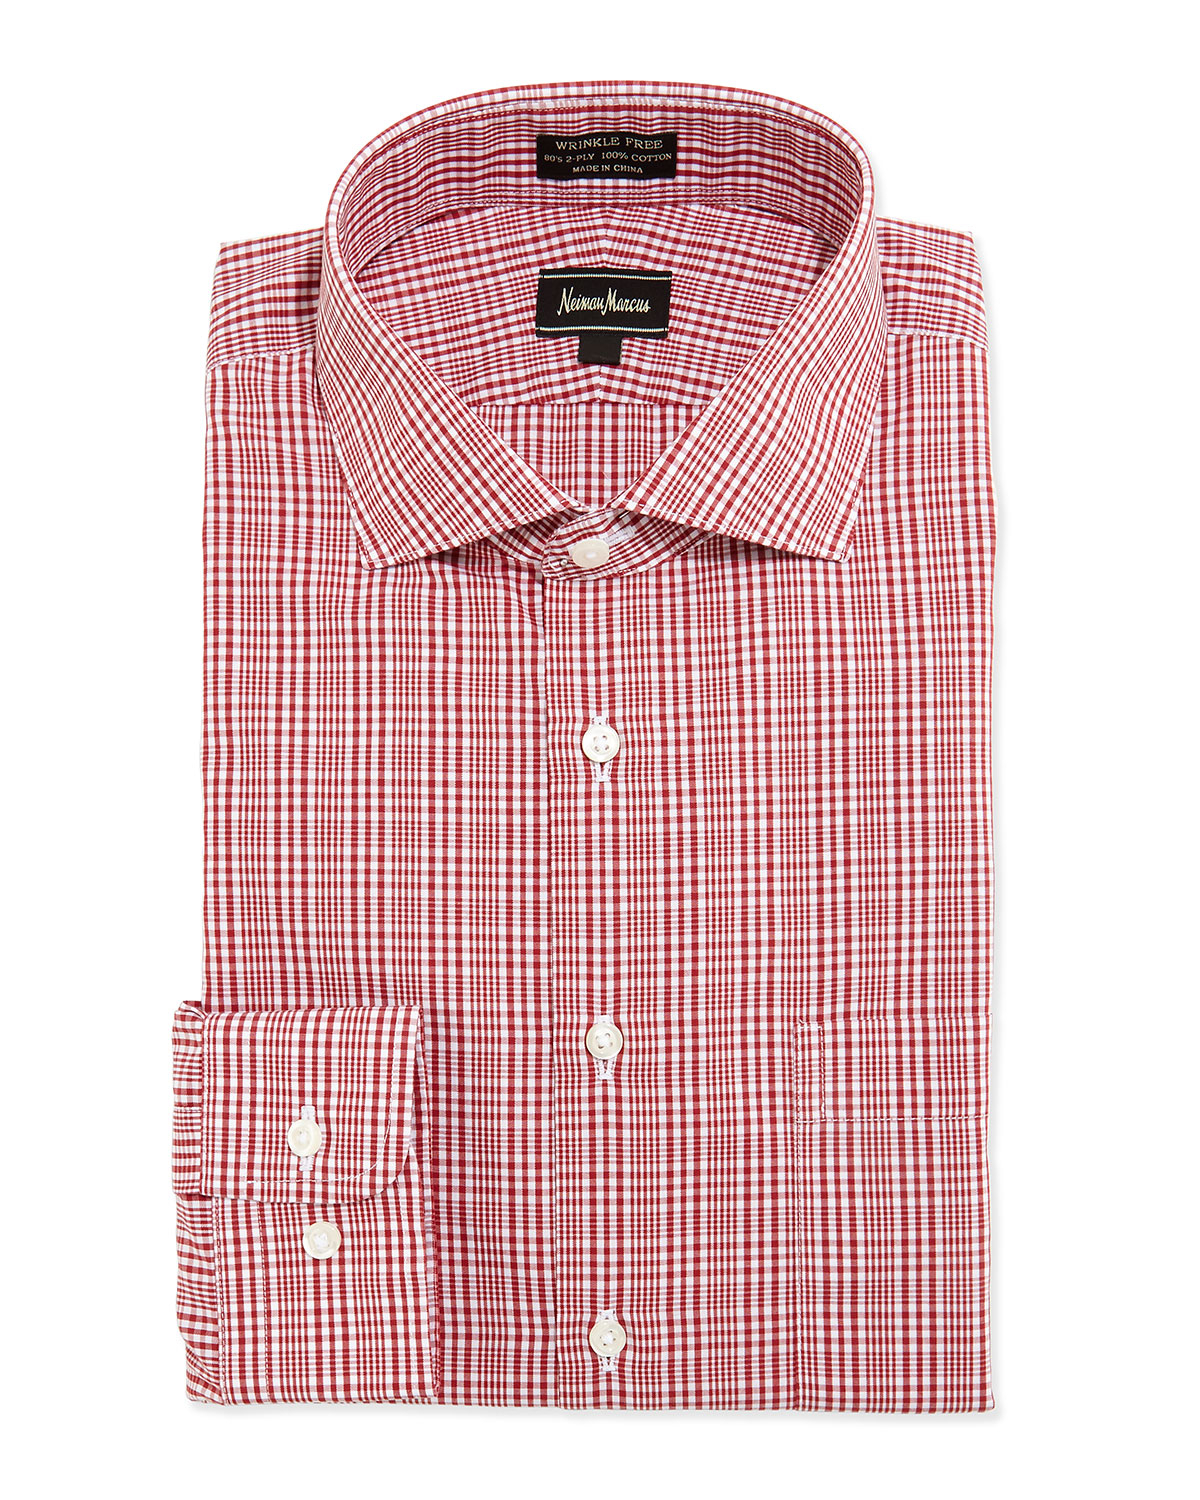 Neiman marcus classic fit non iron plaid dress shirt in for Red plaid dress shirt